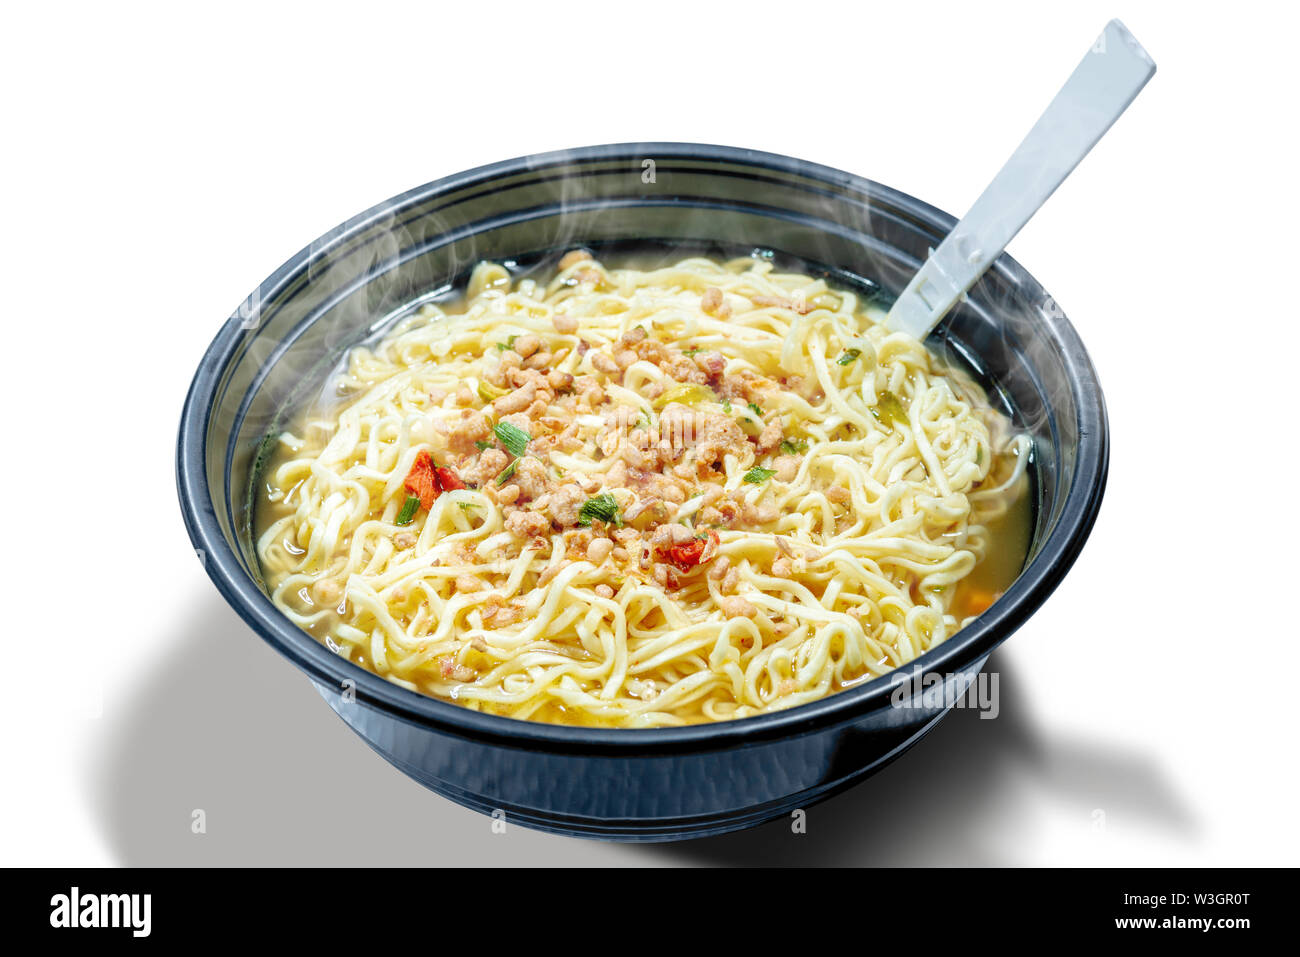 Noodles on the bowl with fork isolated over white background - Stock Image